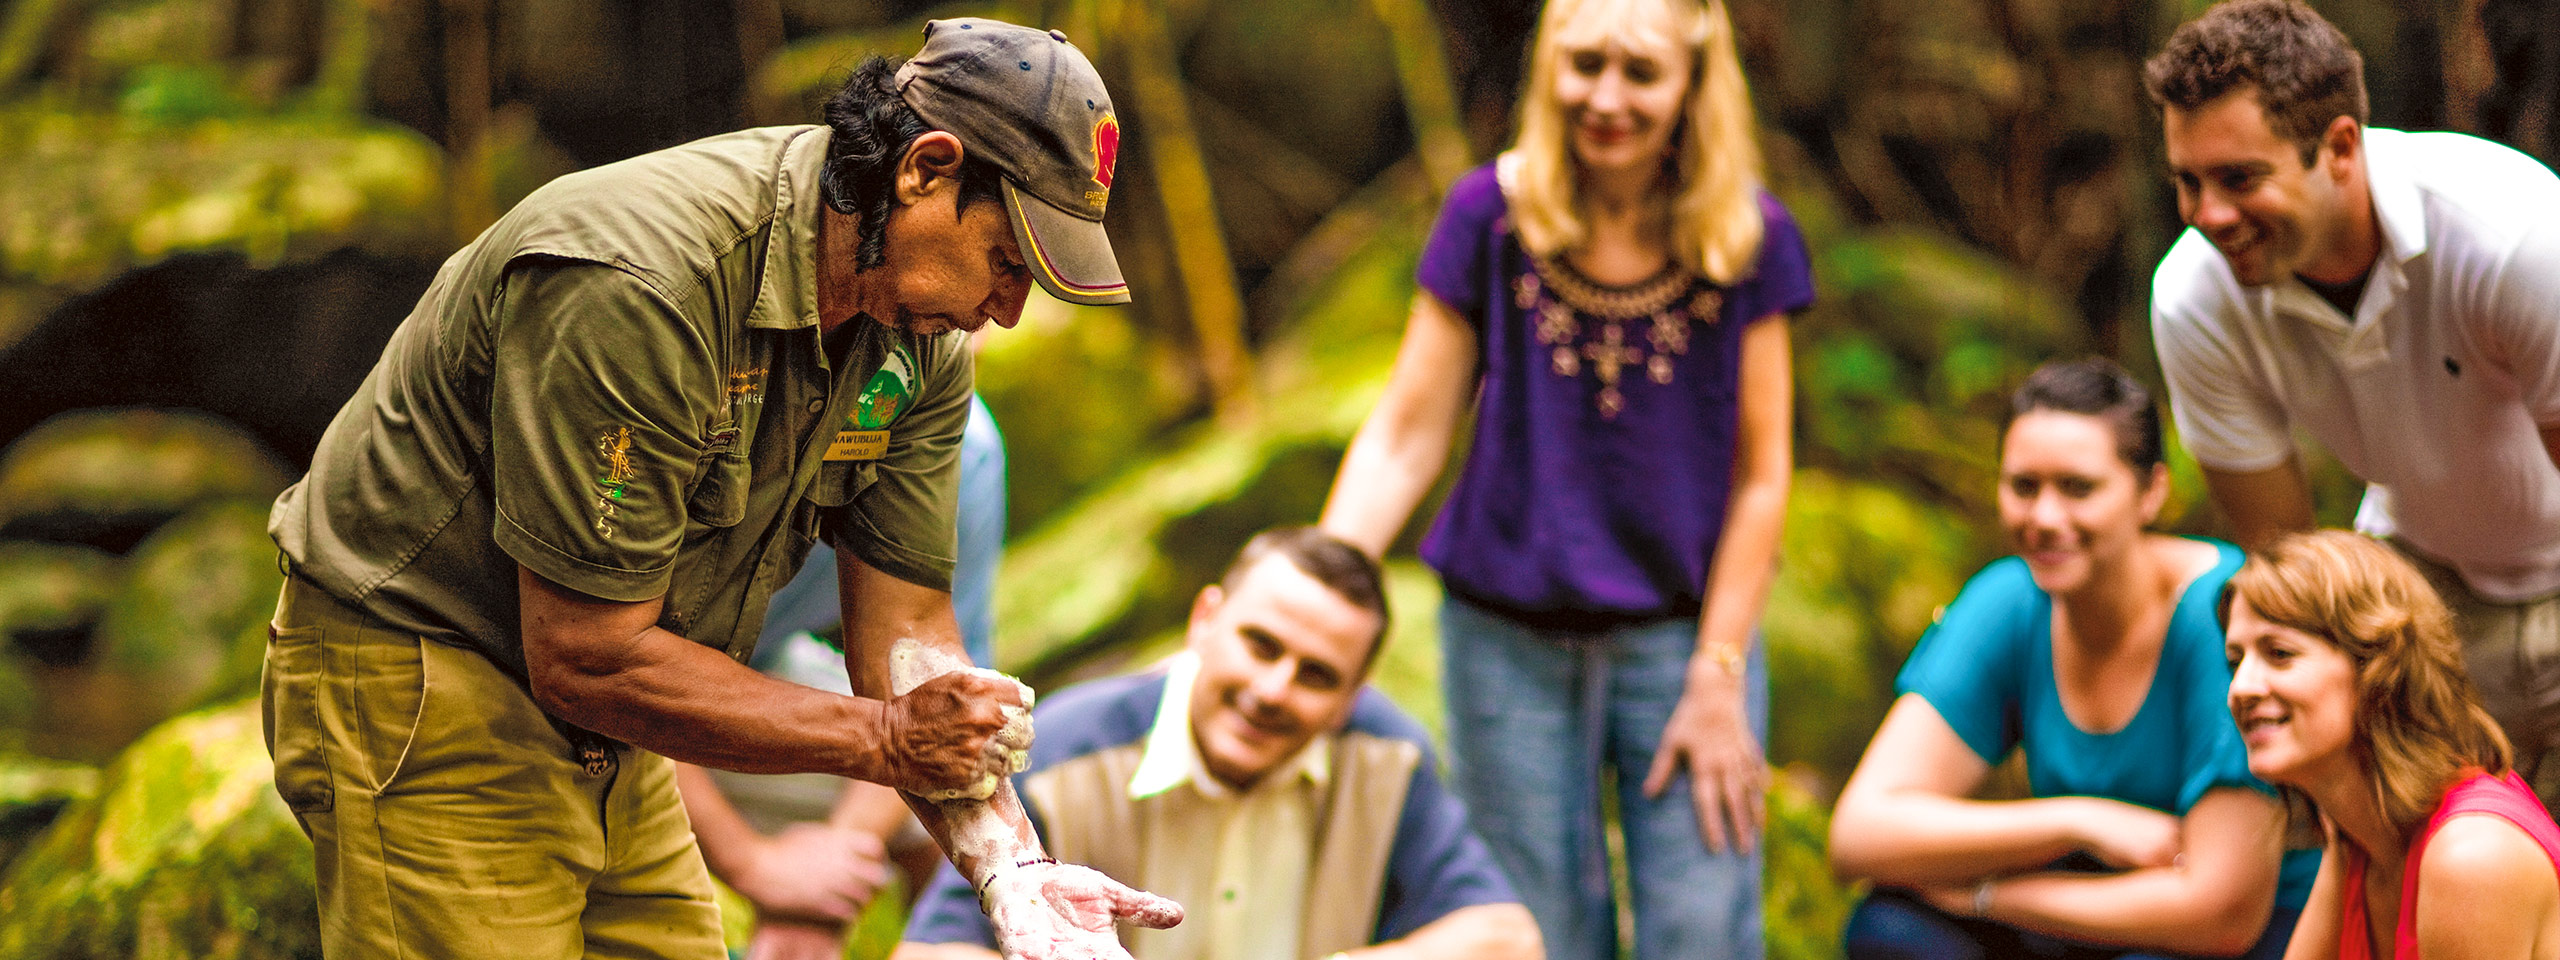 Kuku Yalanji Aboriginal Experience at Cape Tribulation